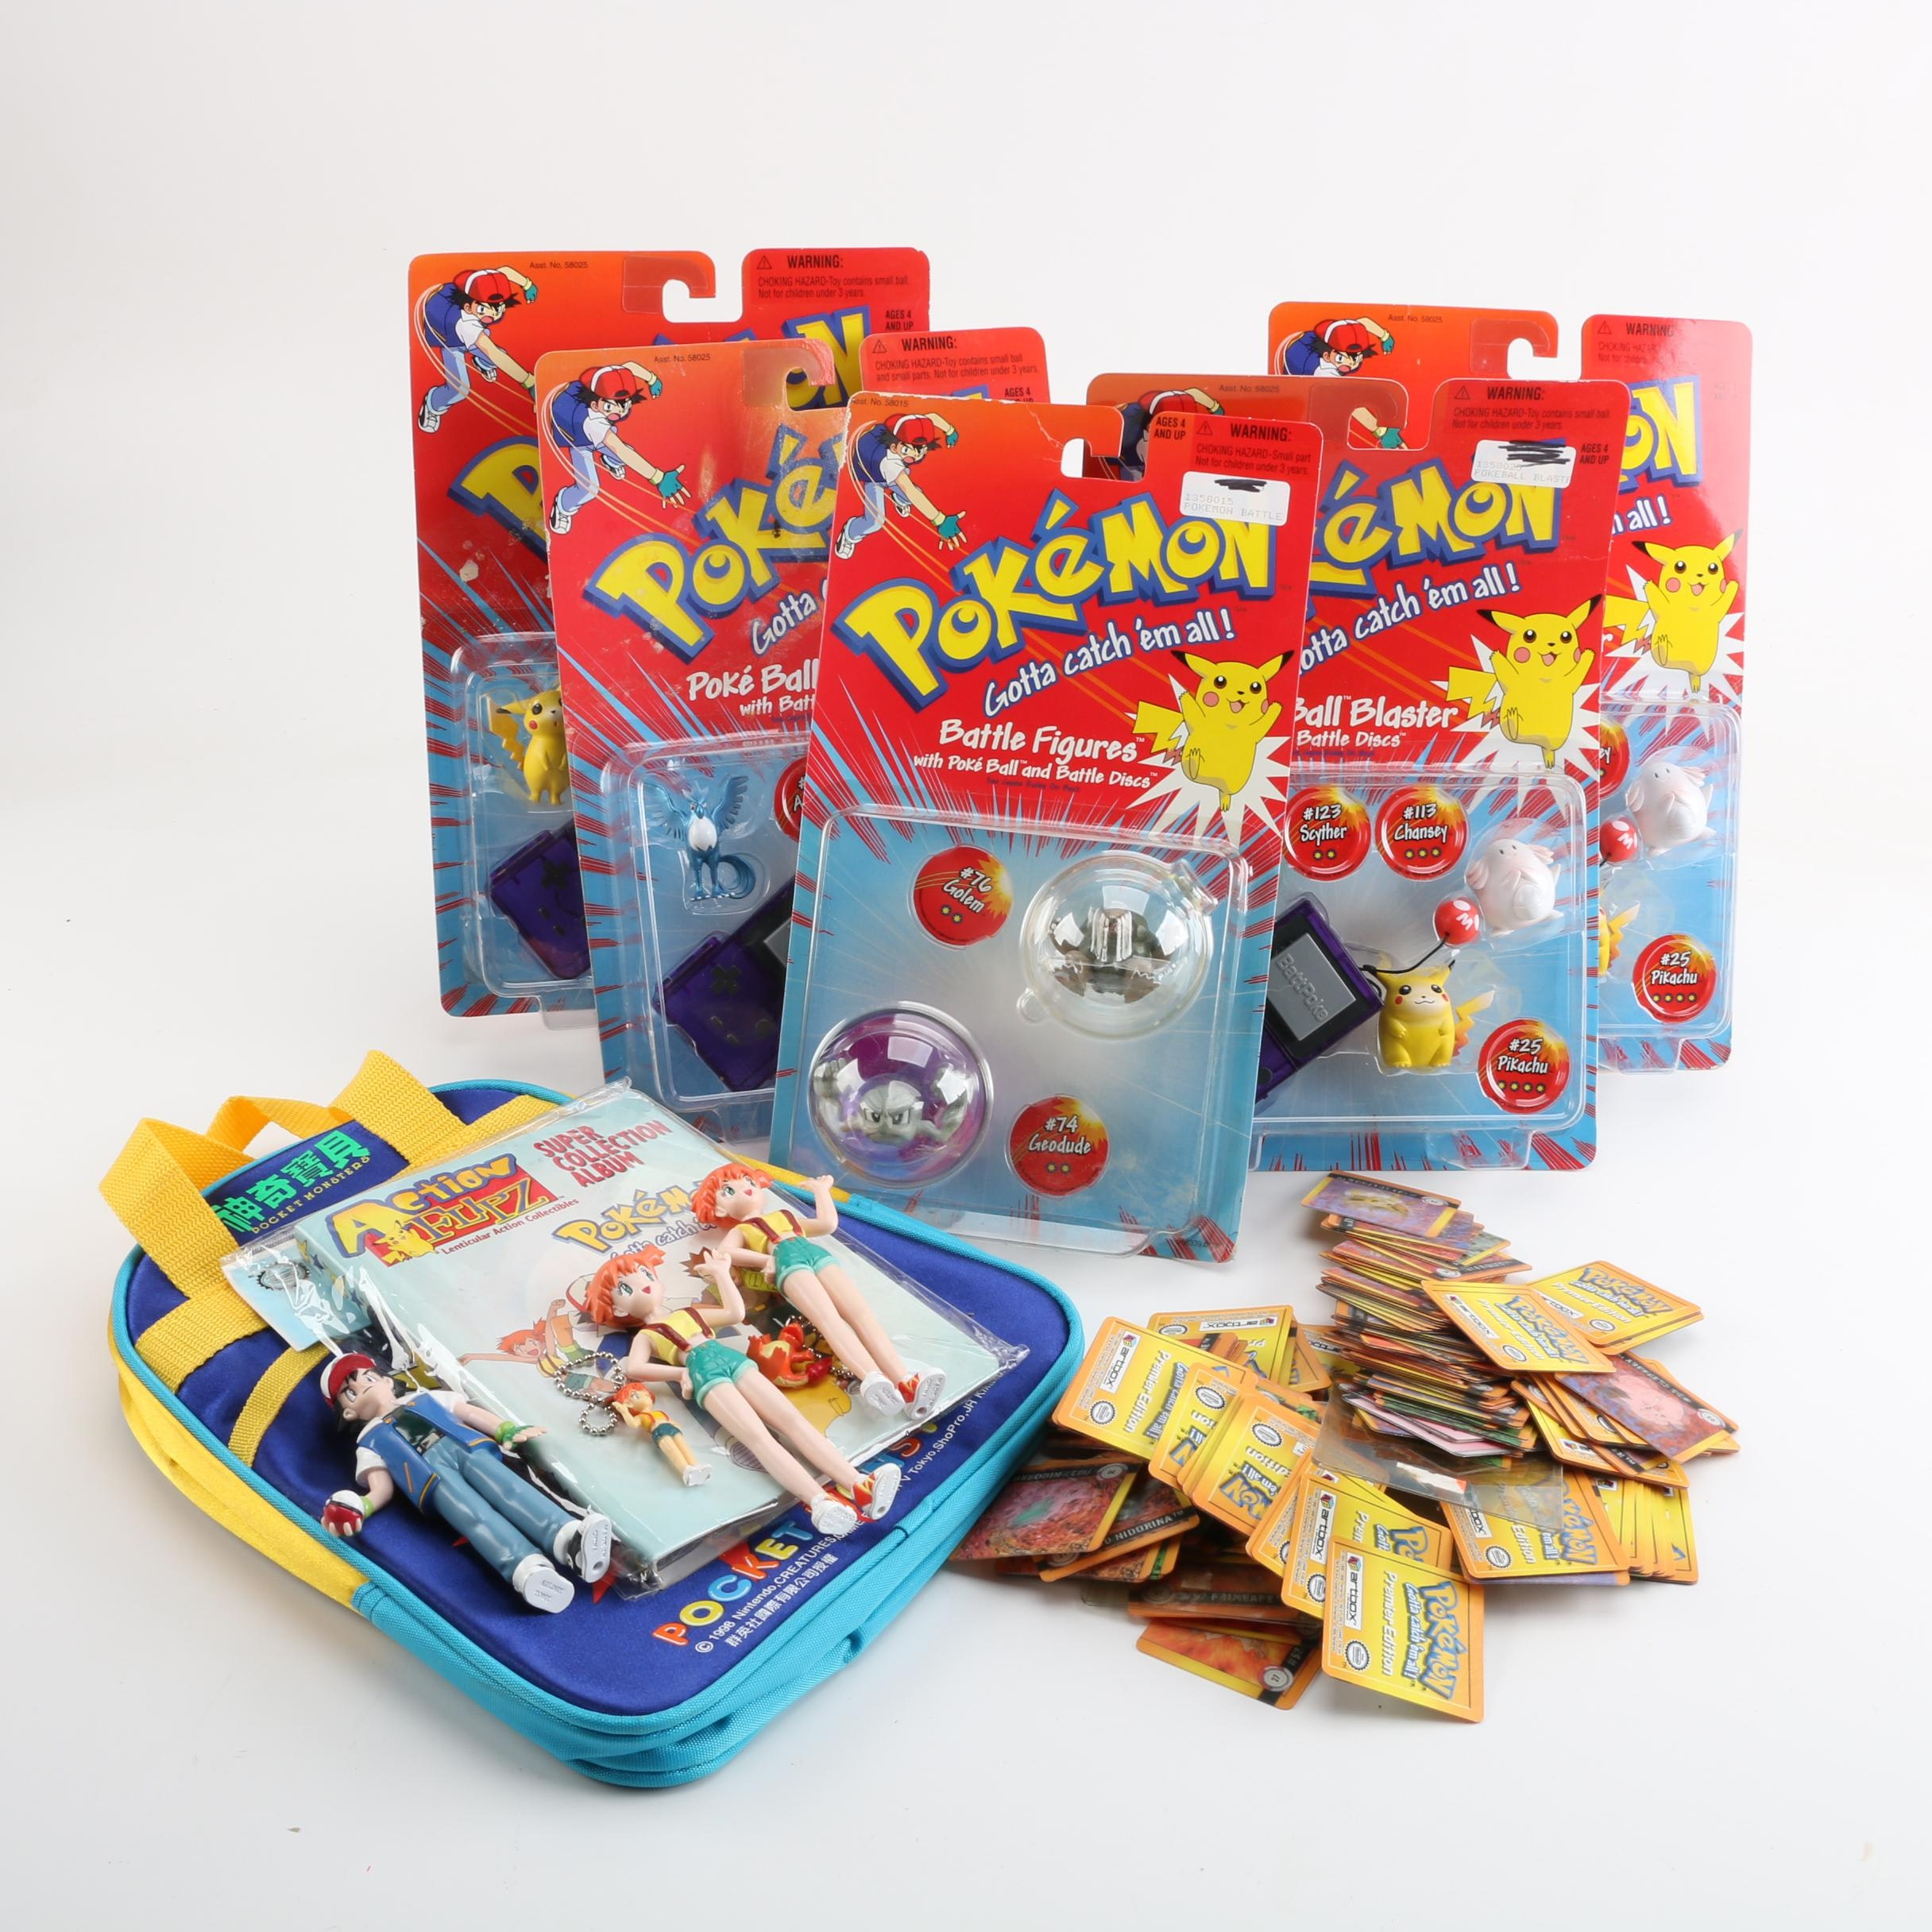 Pokémon Cards, Action Figures, Tote and More